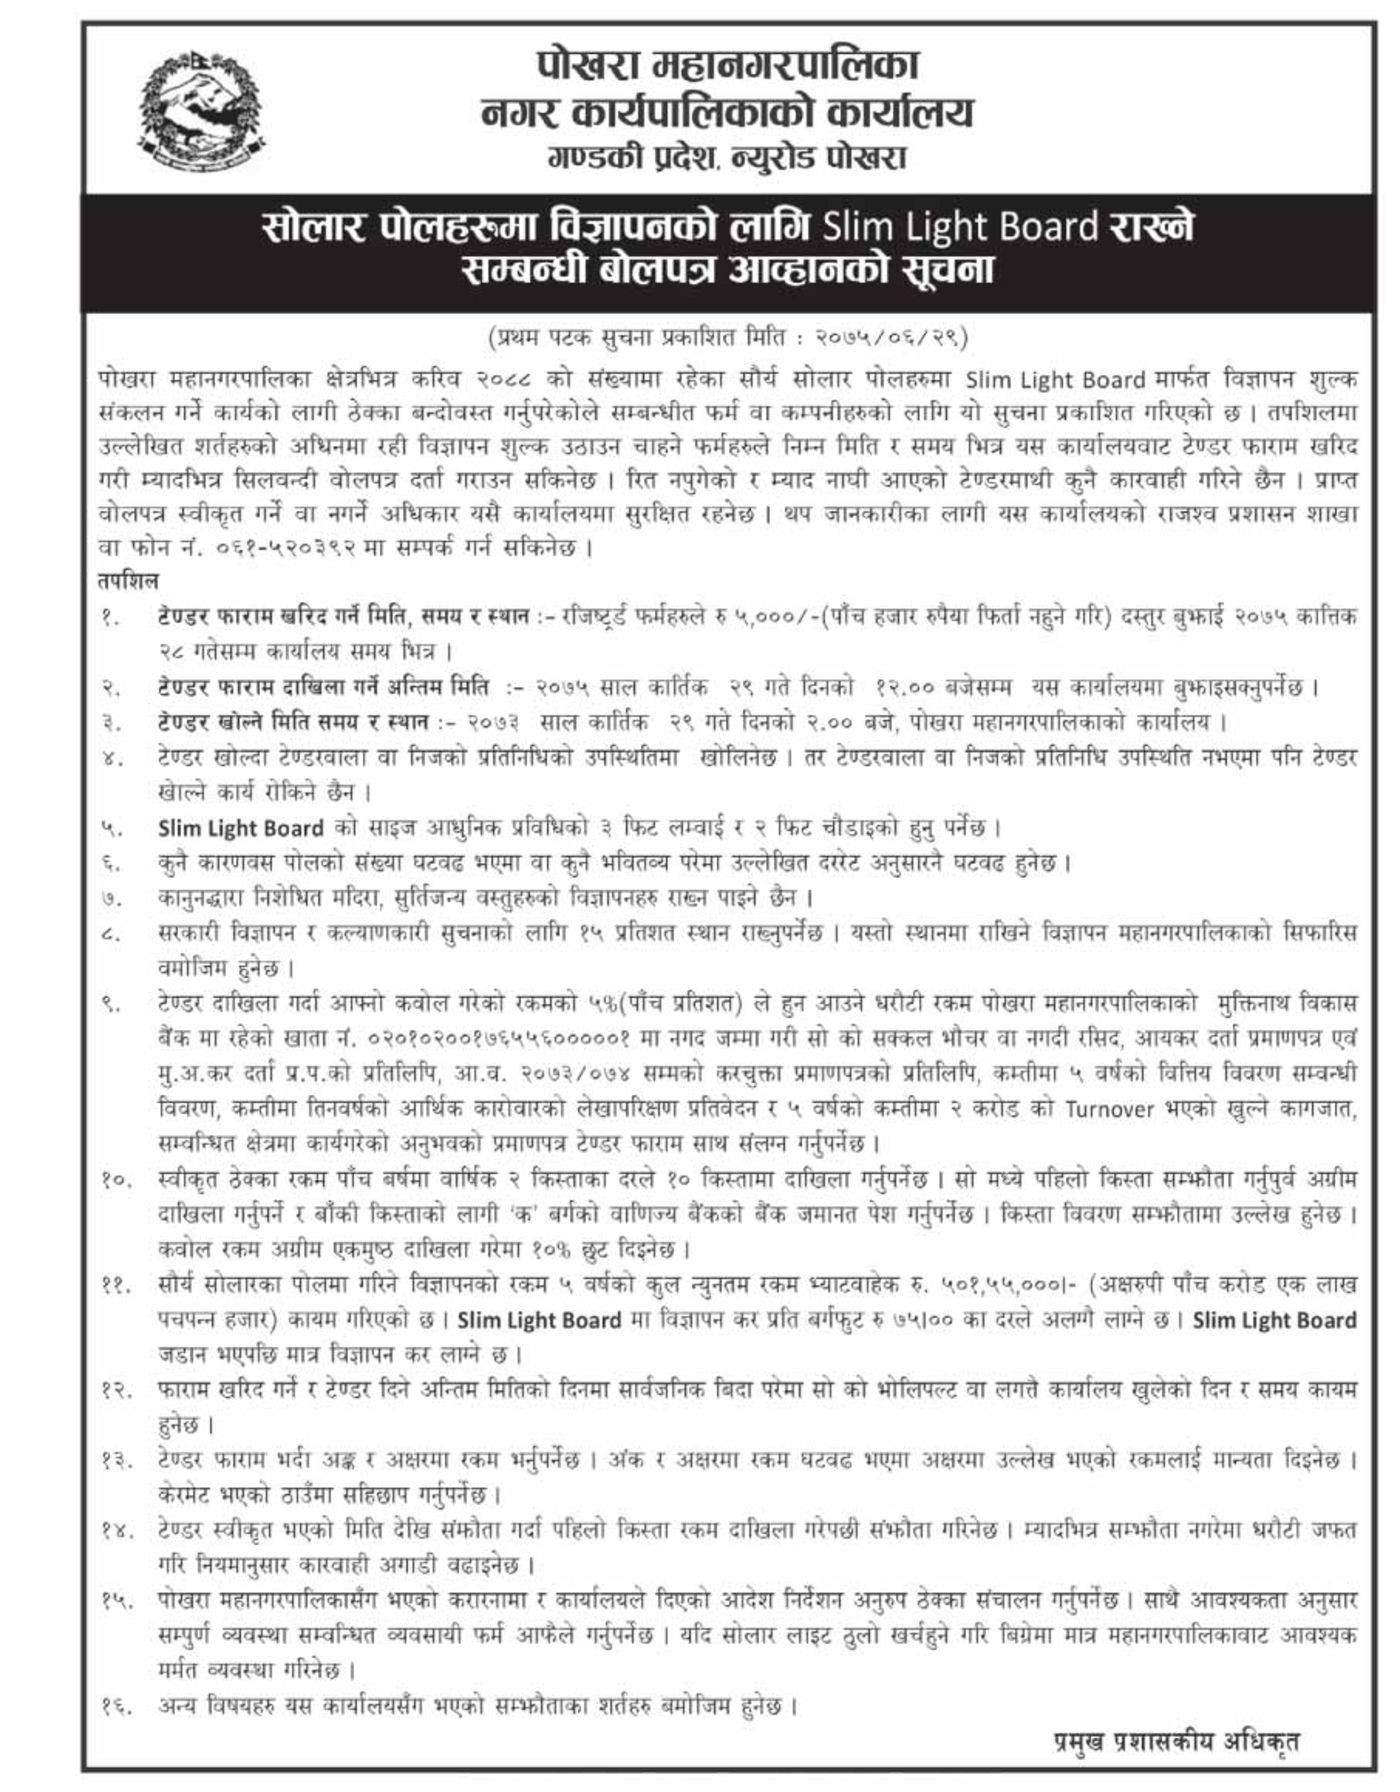 Bids and Tenders Nepal - Invitation for Bids - Slim Light Board for